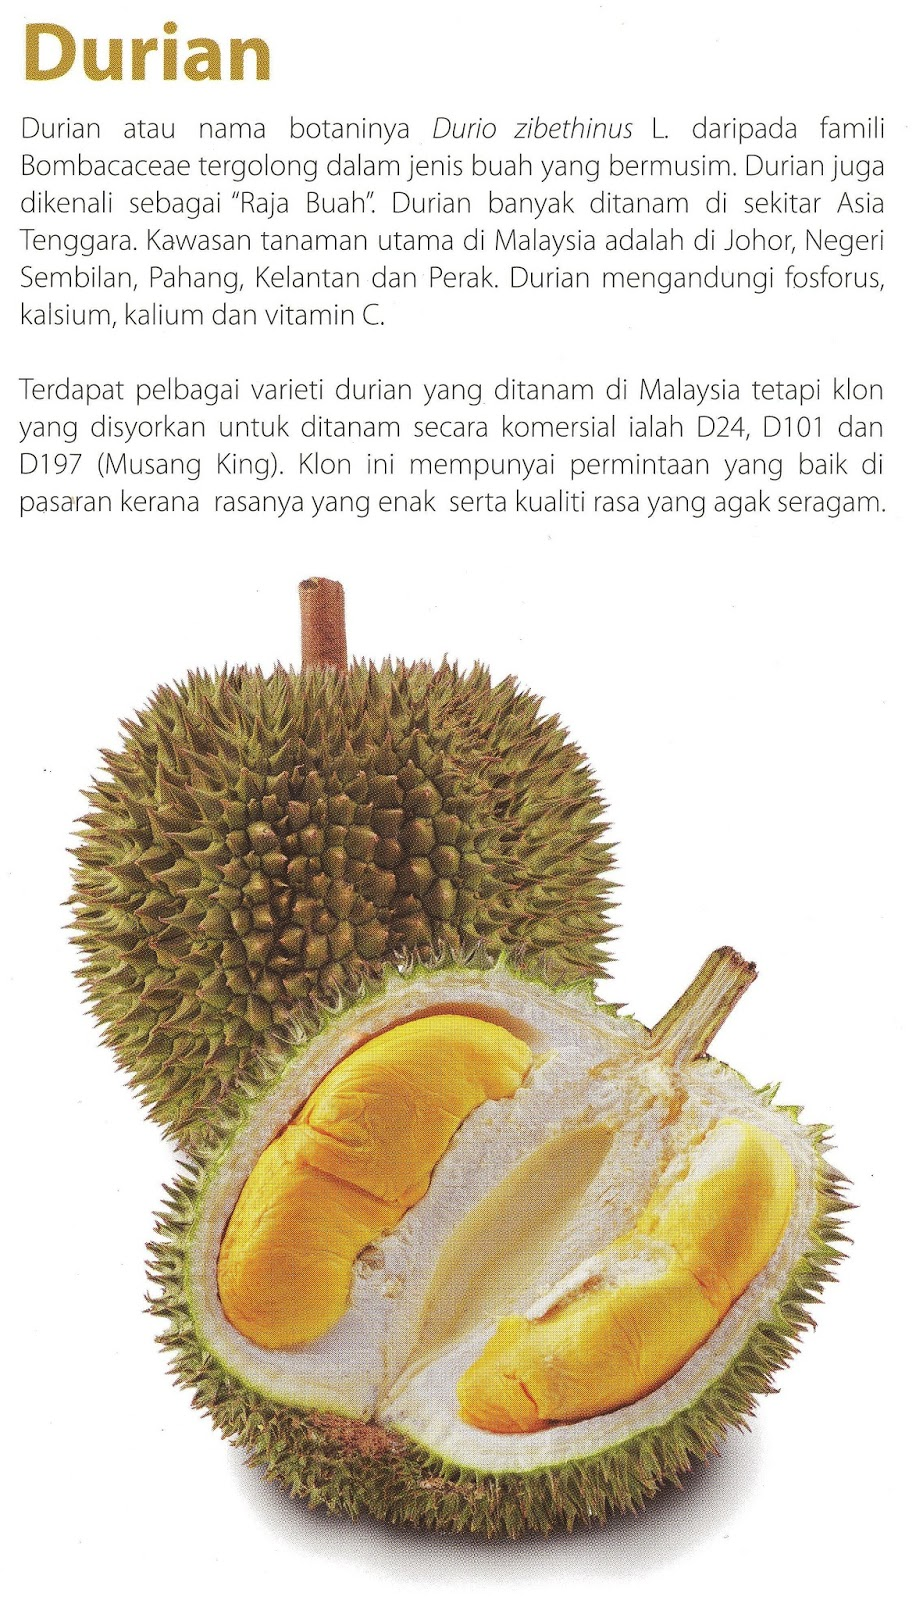 Durian Info: Durian Marketing in Malaysia and FAMA